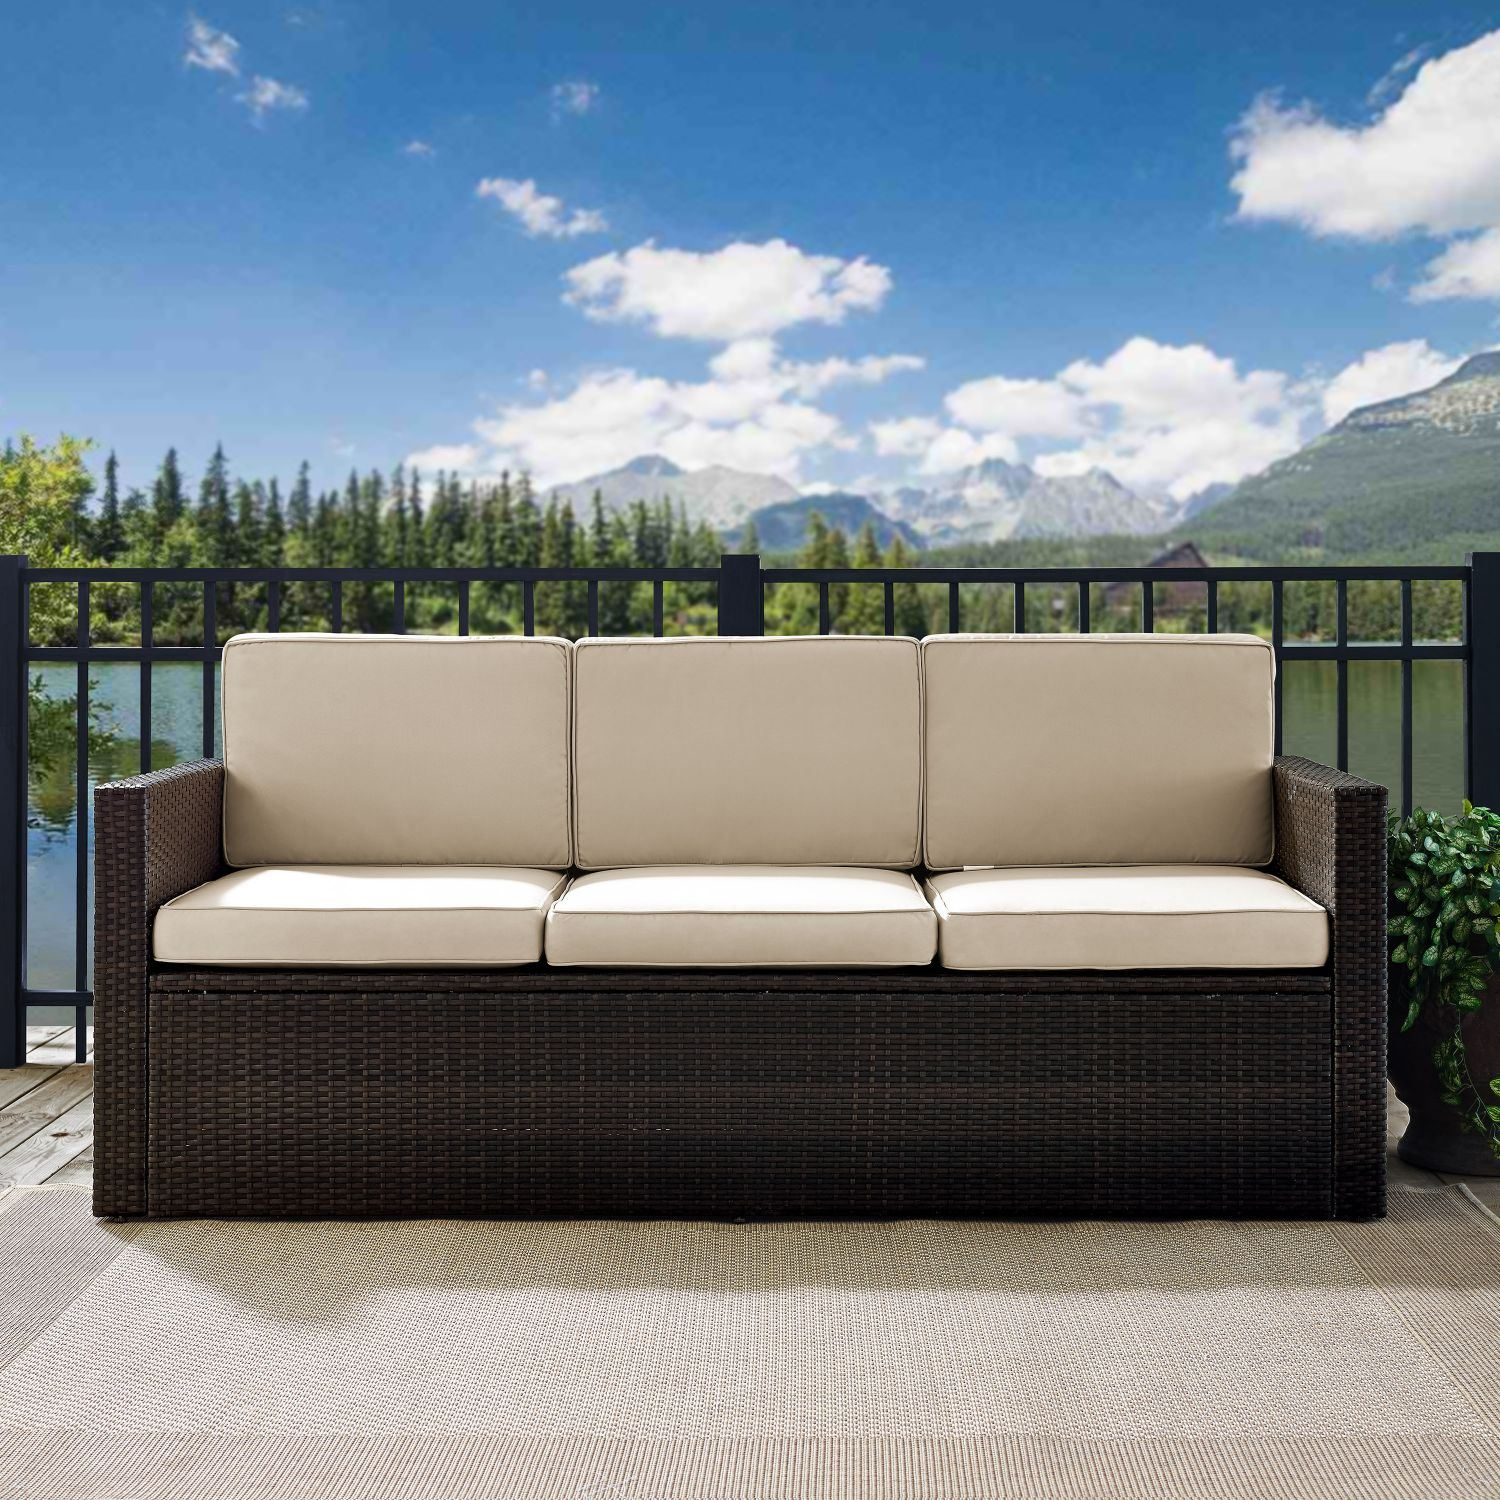 Picture of PALM HARBOR OUTDOOR WICKER SOFA IN BROWN WITH SAND